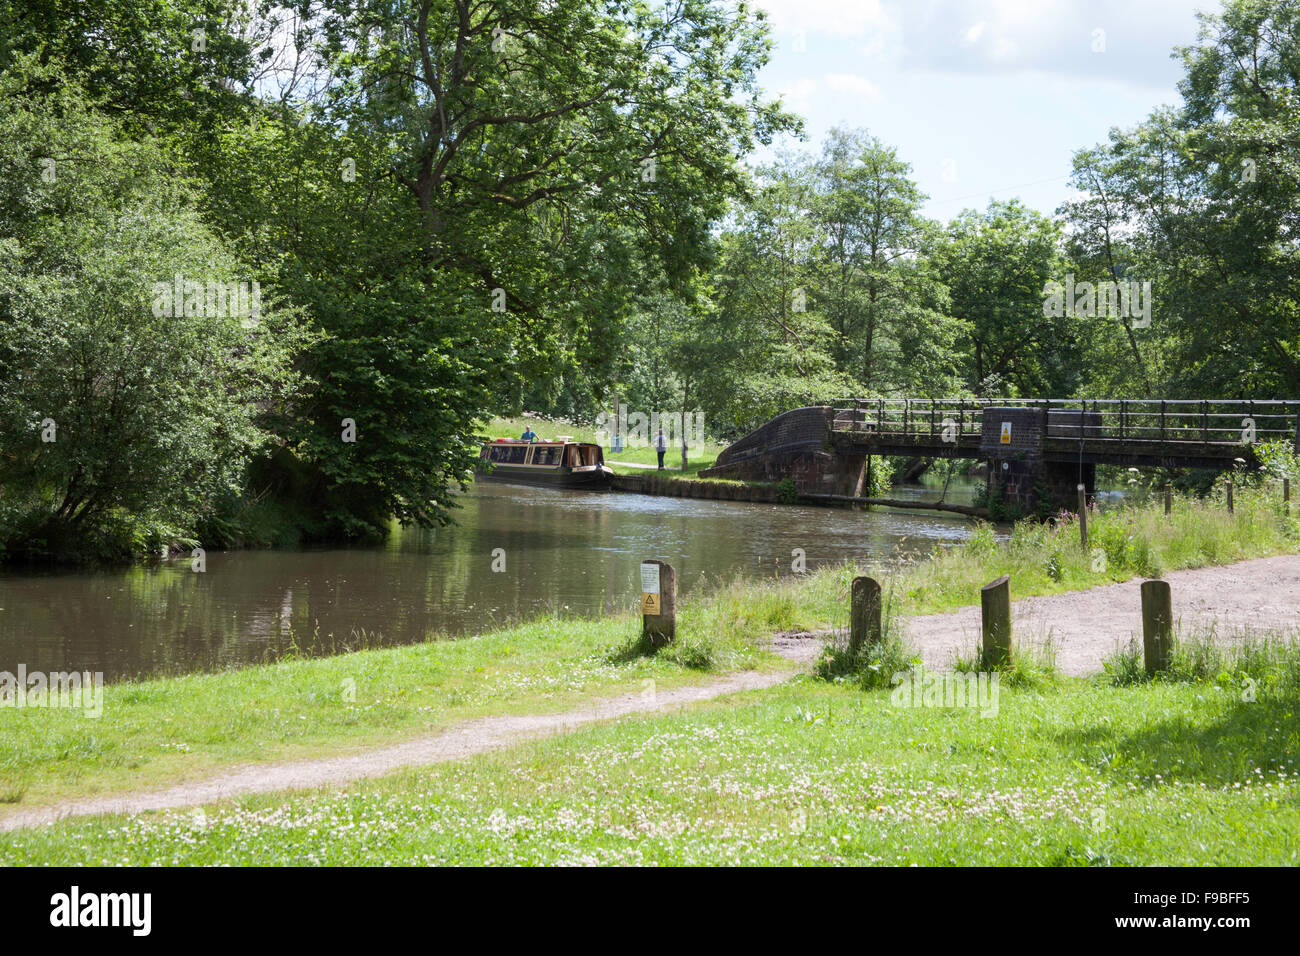 The Caldon Canal near the junction with the River Churnet at Consall in the Churnet Valley Staffordshire England - Stock Image